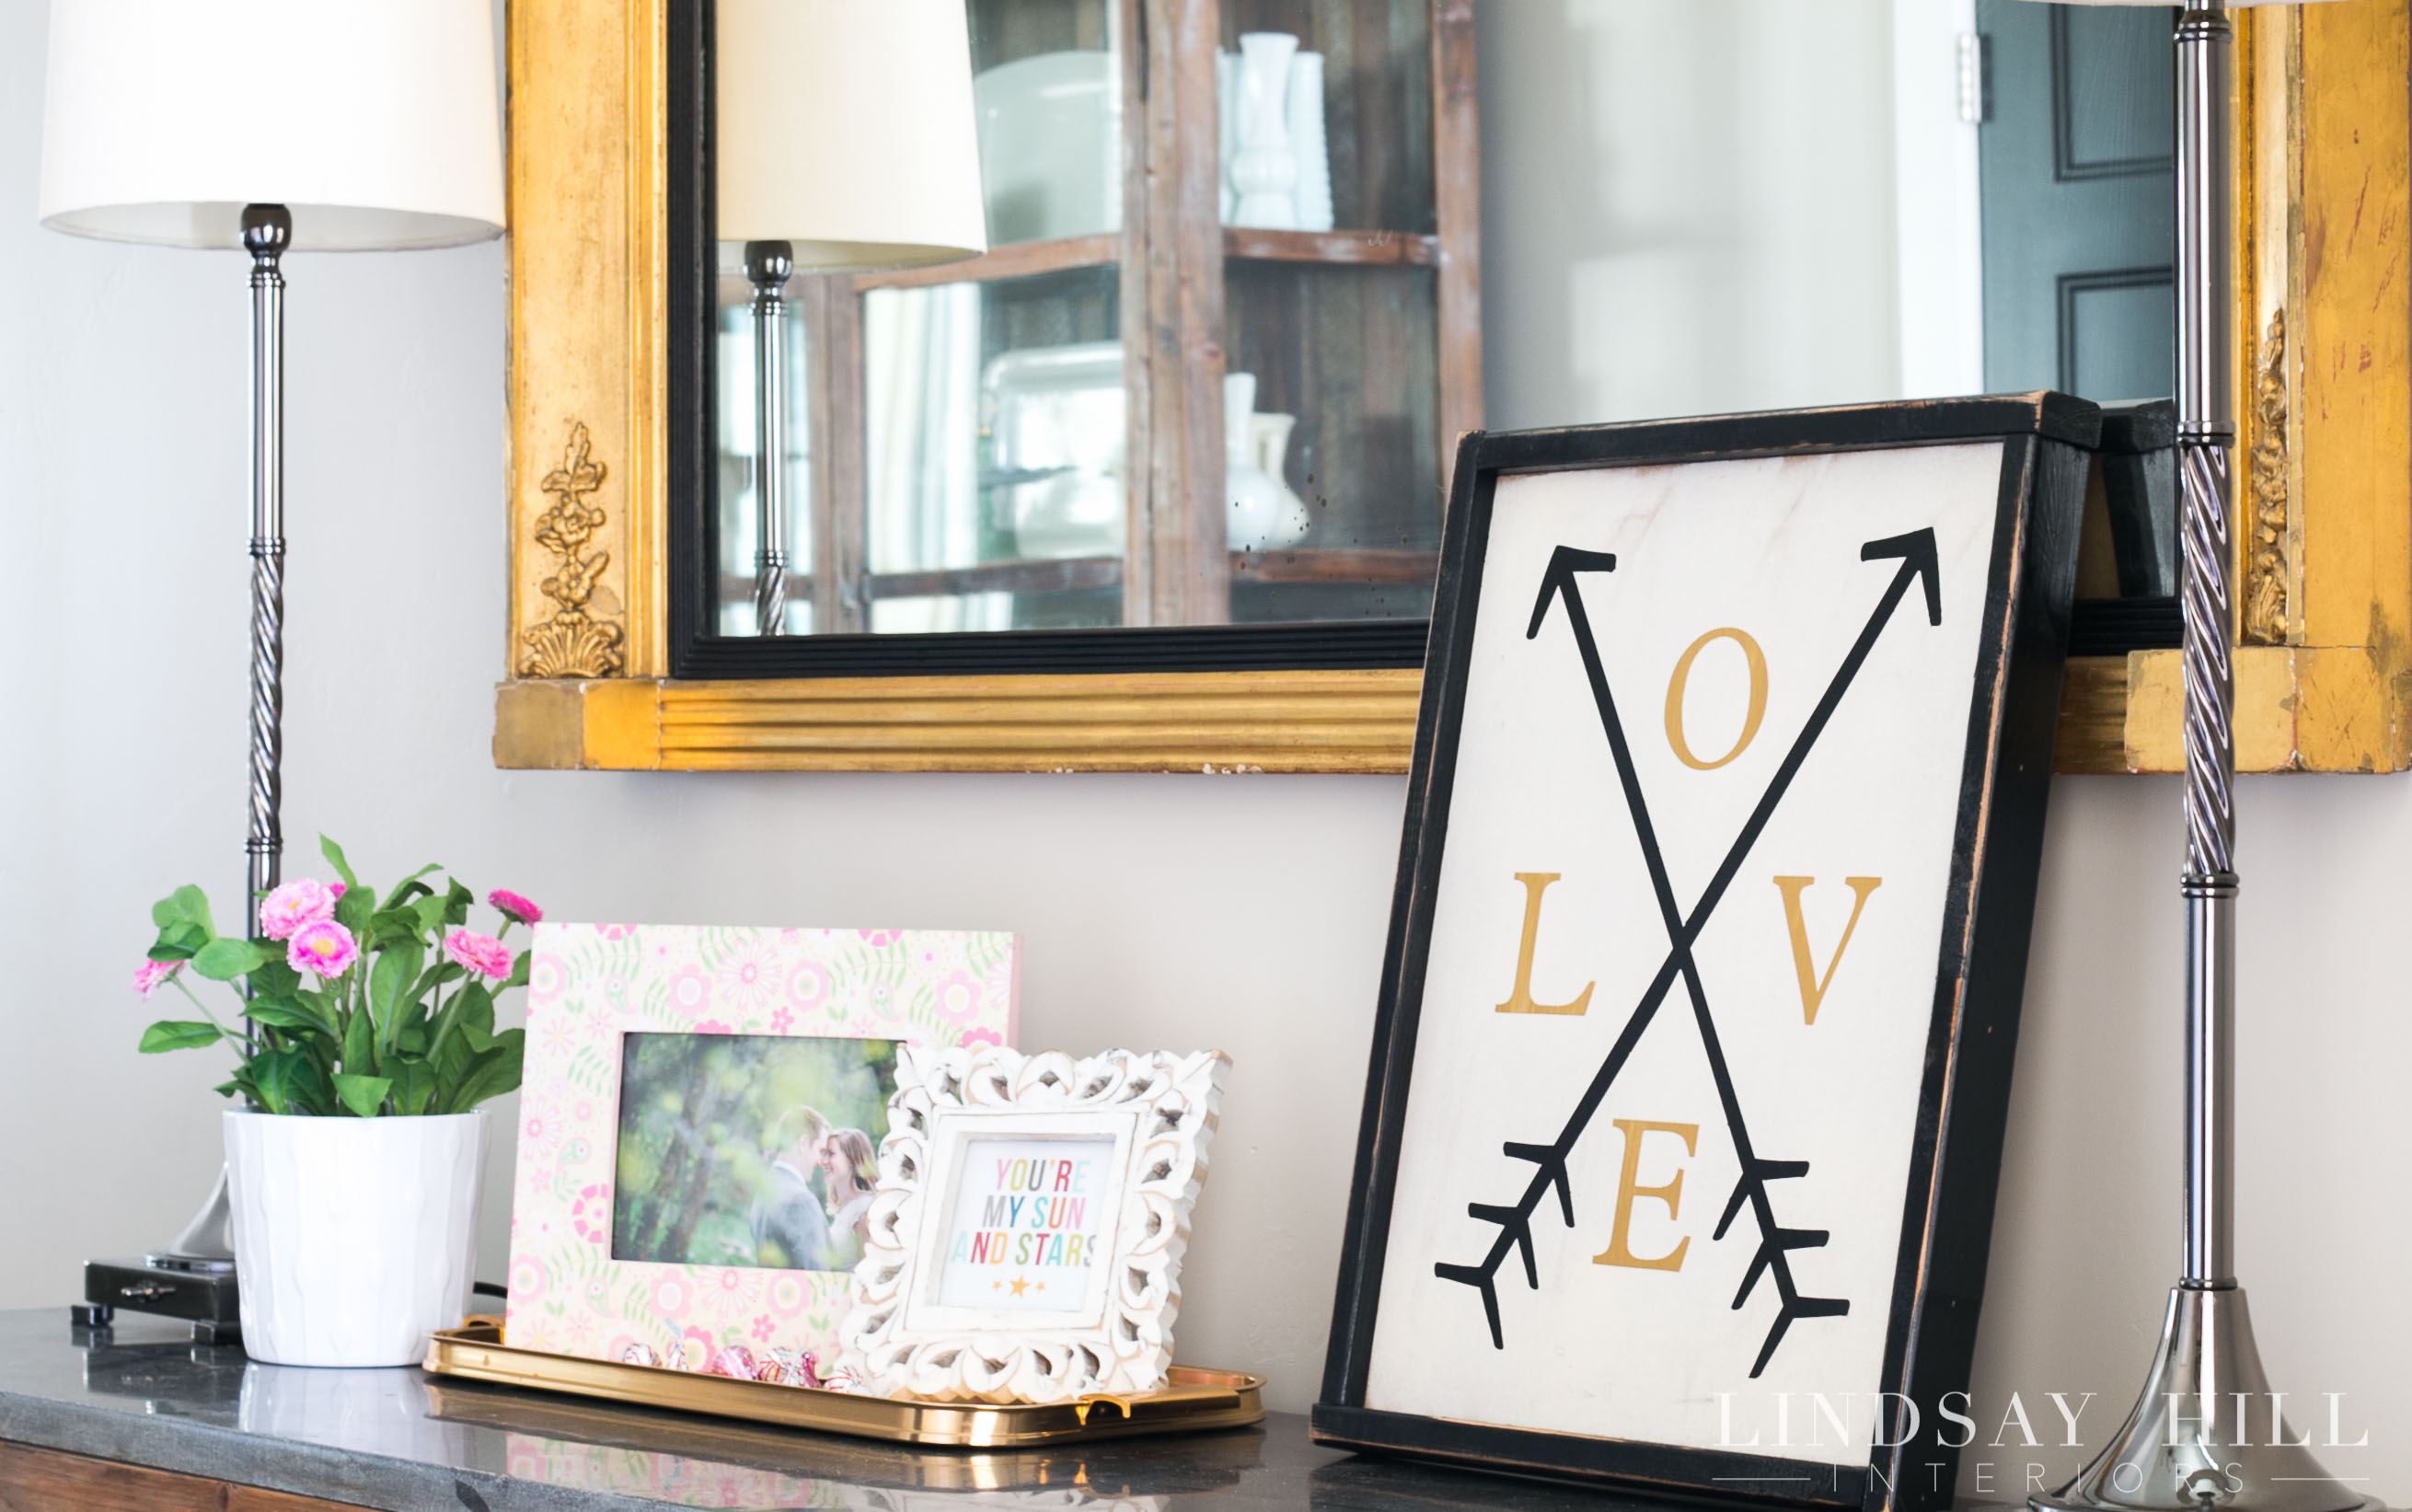 lindsay hill interiors simple valentine's day decor entry